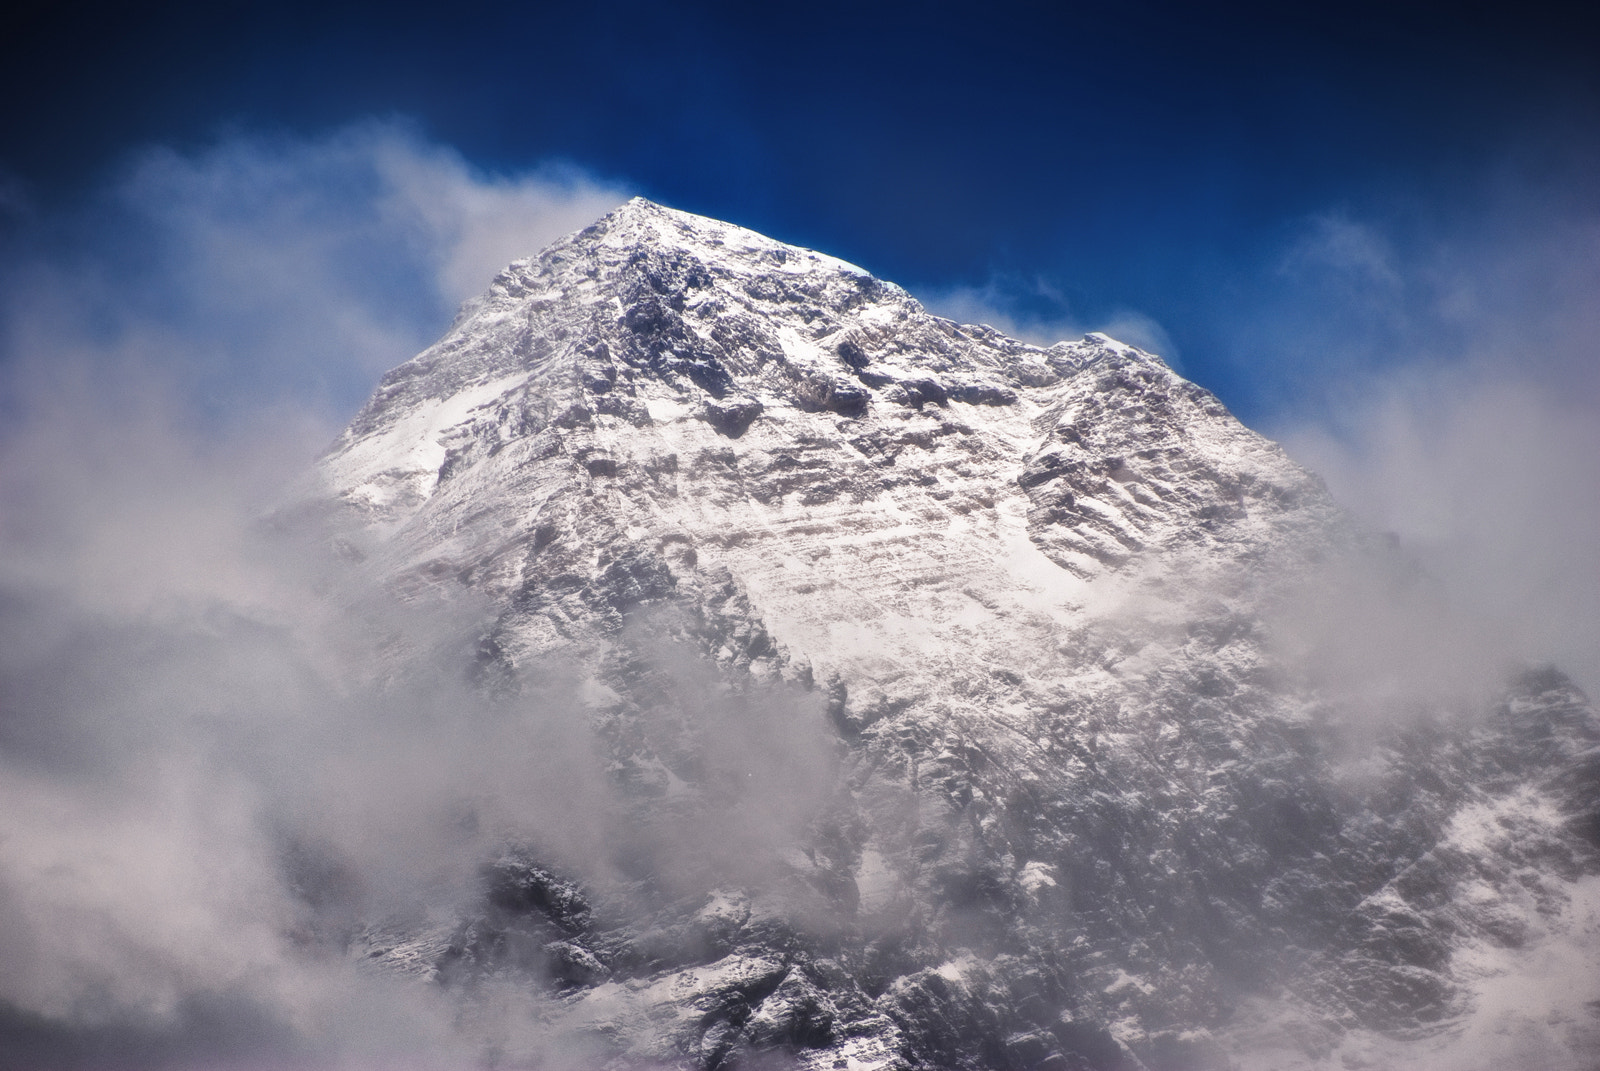 Photograph #1 (Cloudy view to Everest from Kala Pathhar) by Ivan Roslyakov on 500px